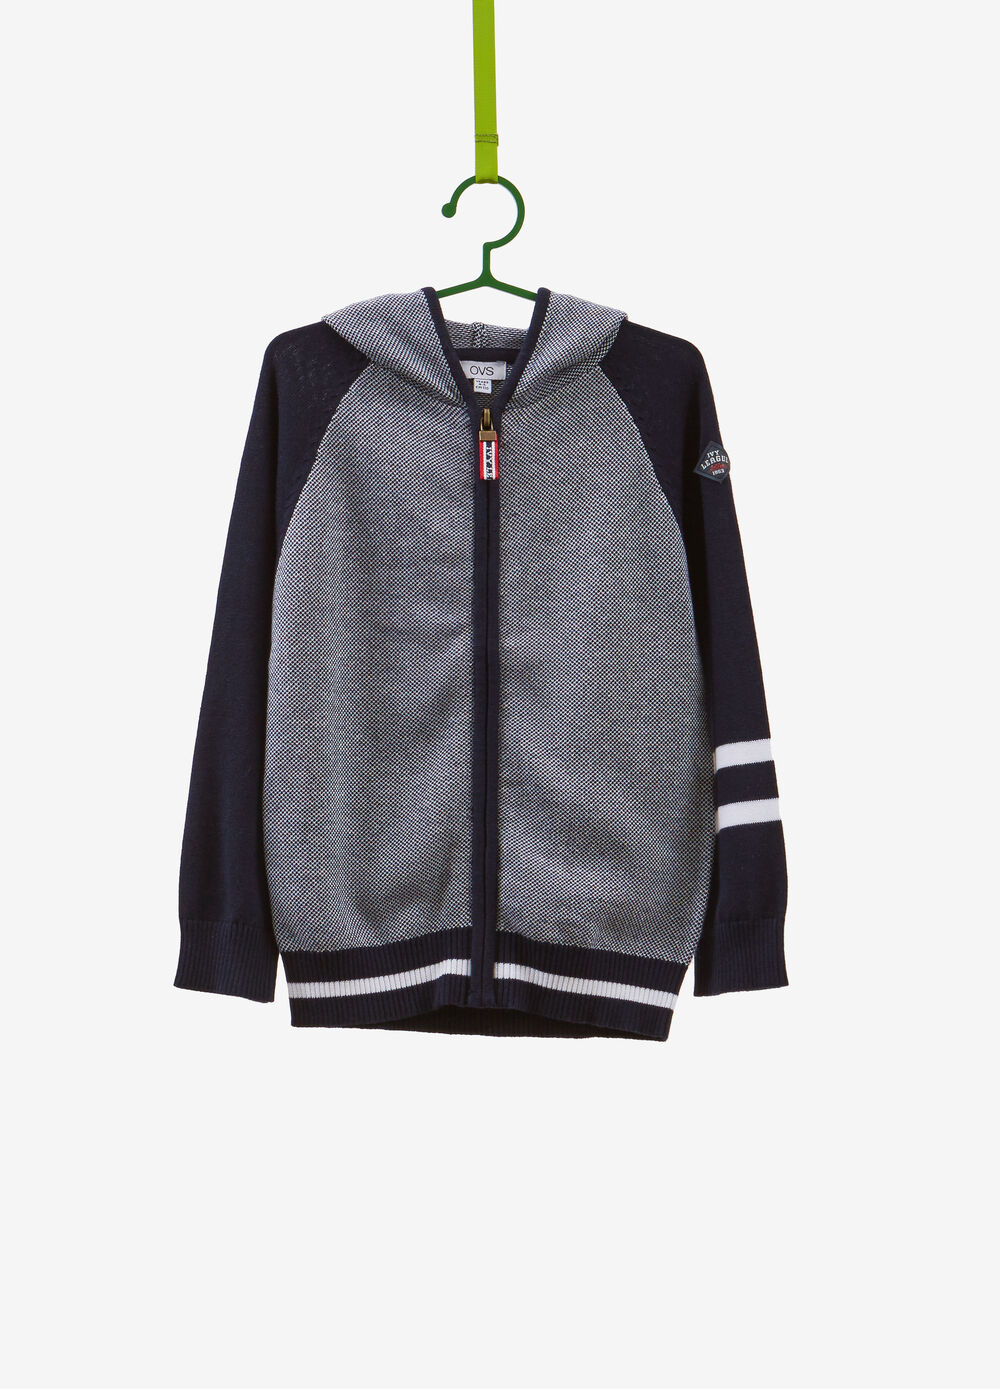 100% cotton knitted sweatshirt with micro pattern